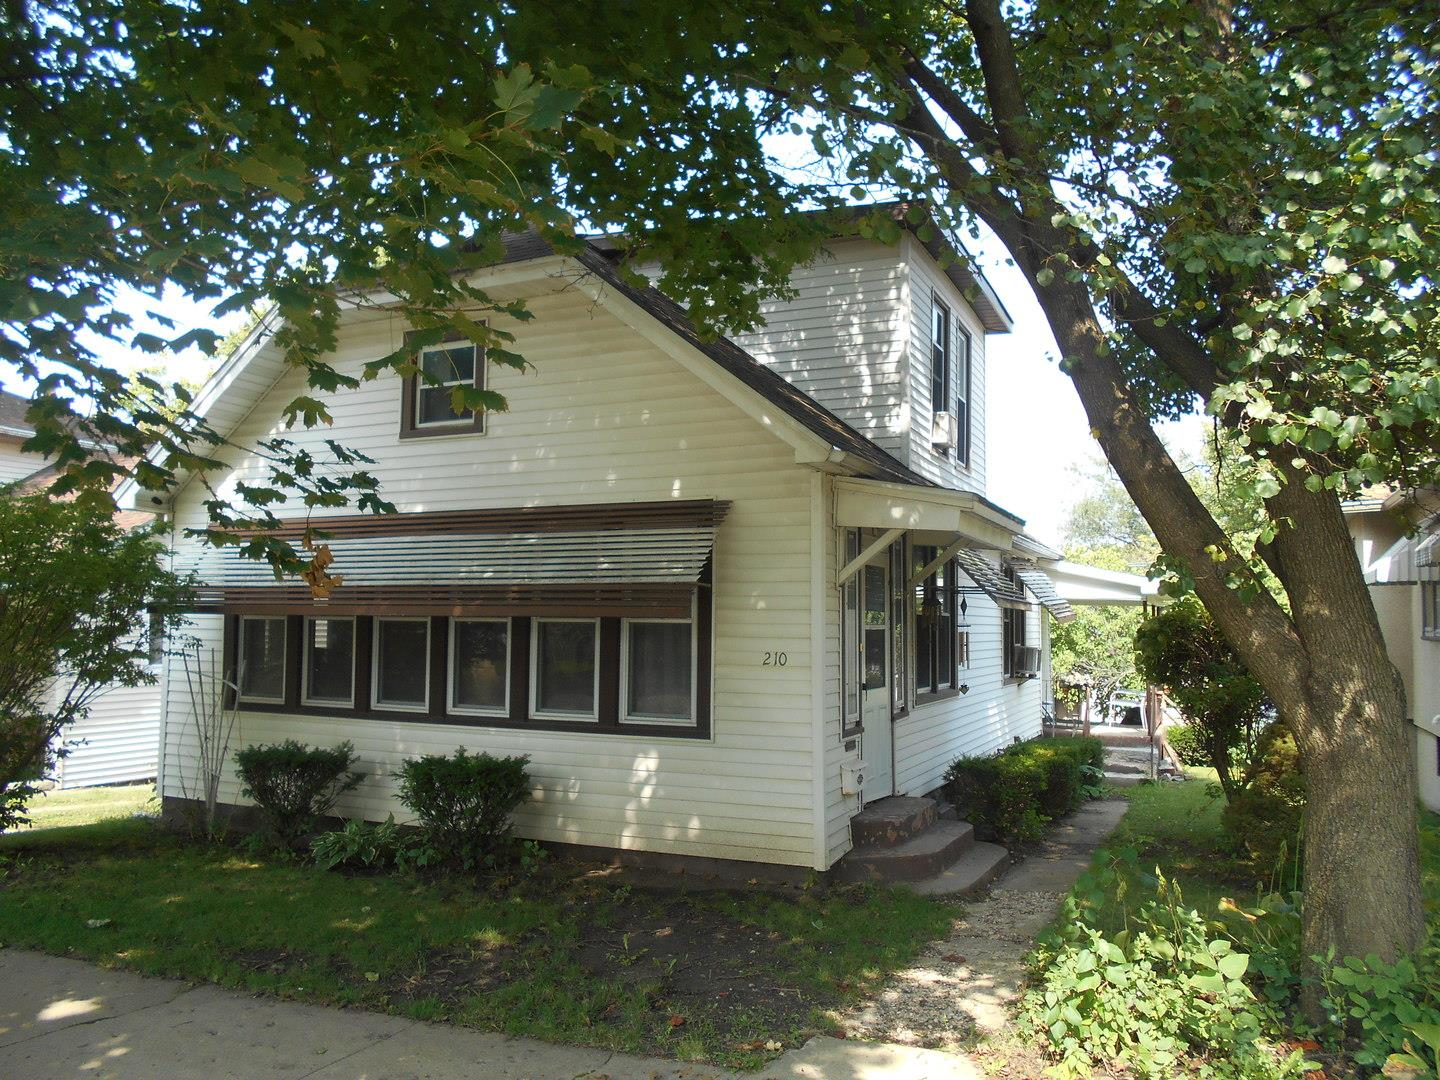 210 W Dakota Street, Spring Valley, IL 61362 - #: 10859558